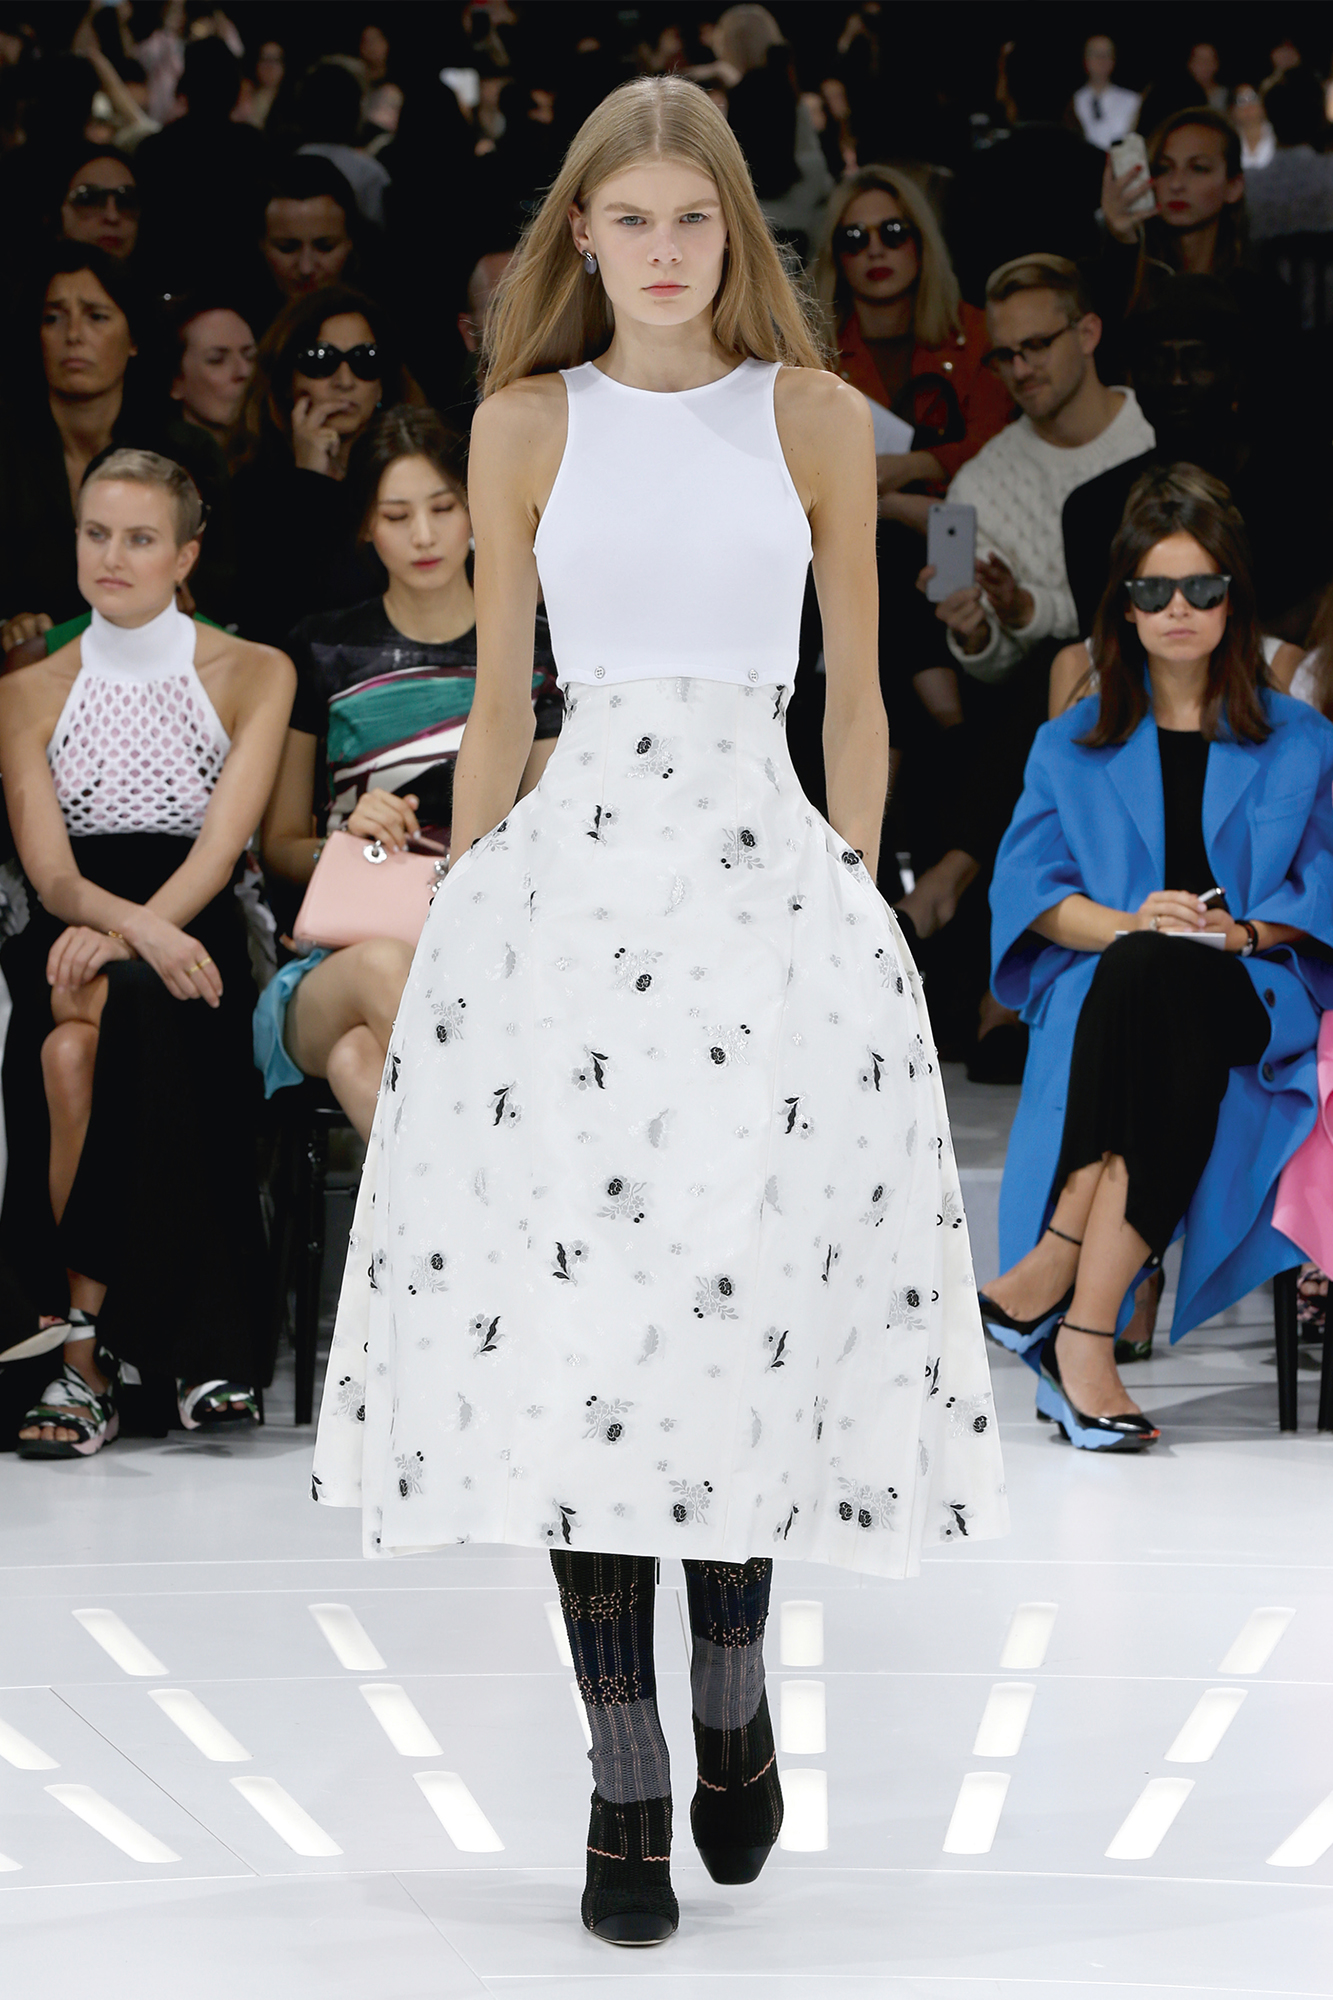 Christian Dior Haute Couture Spring-Summer Ready To Wear Dresses & Accessories Collection 2015-16 (9)